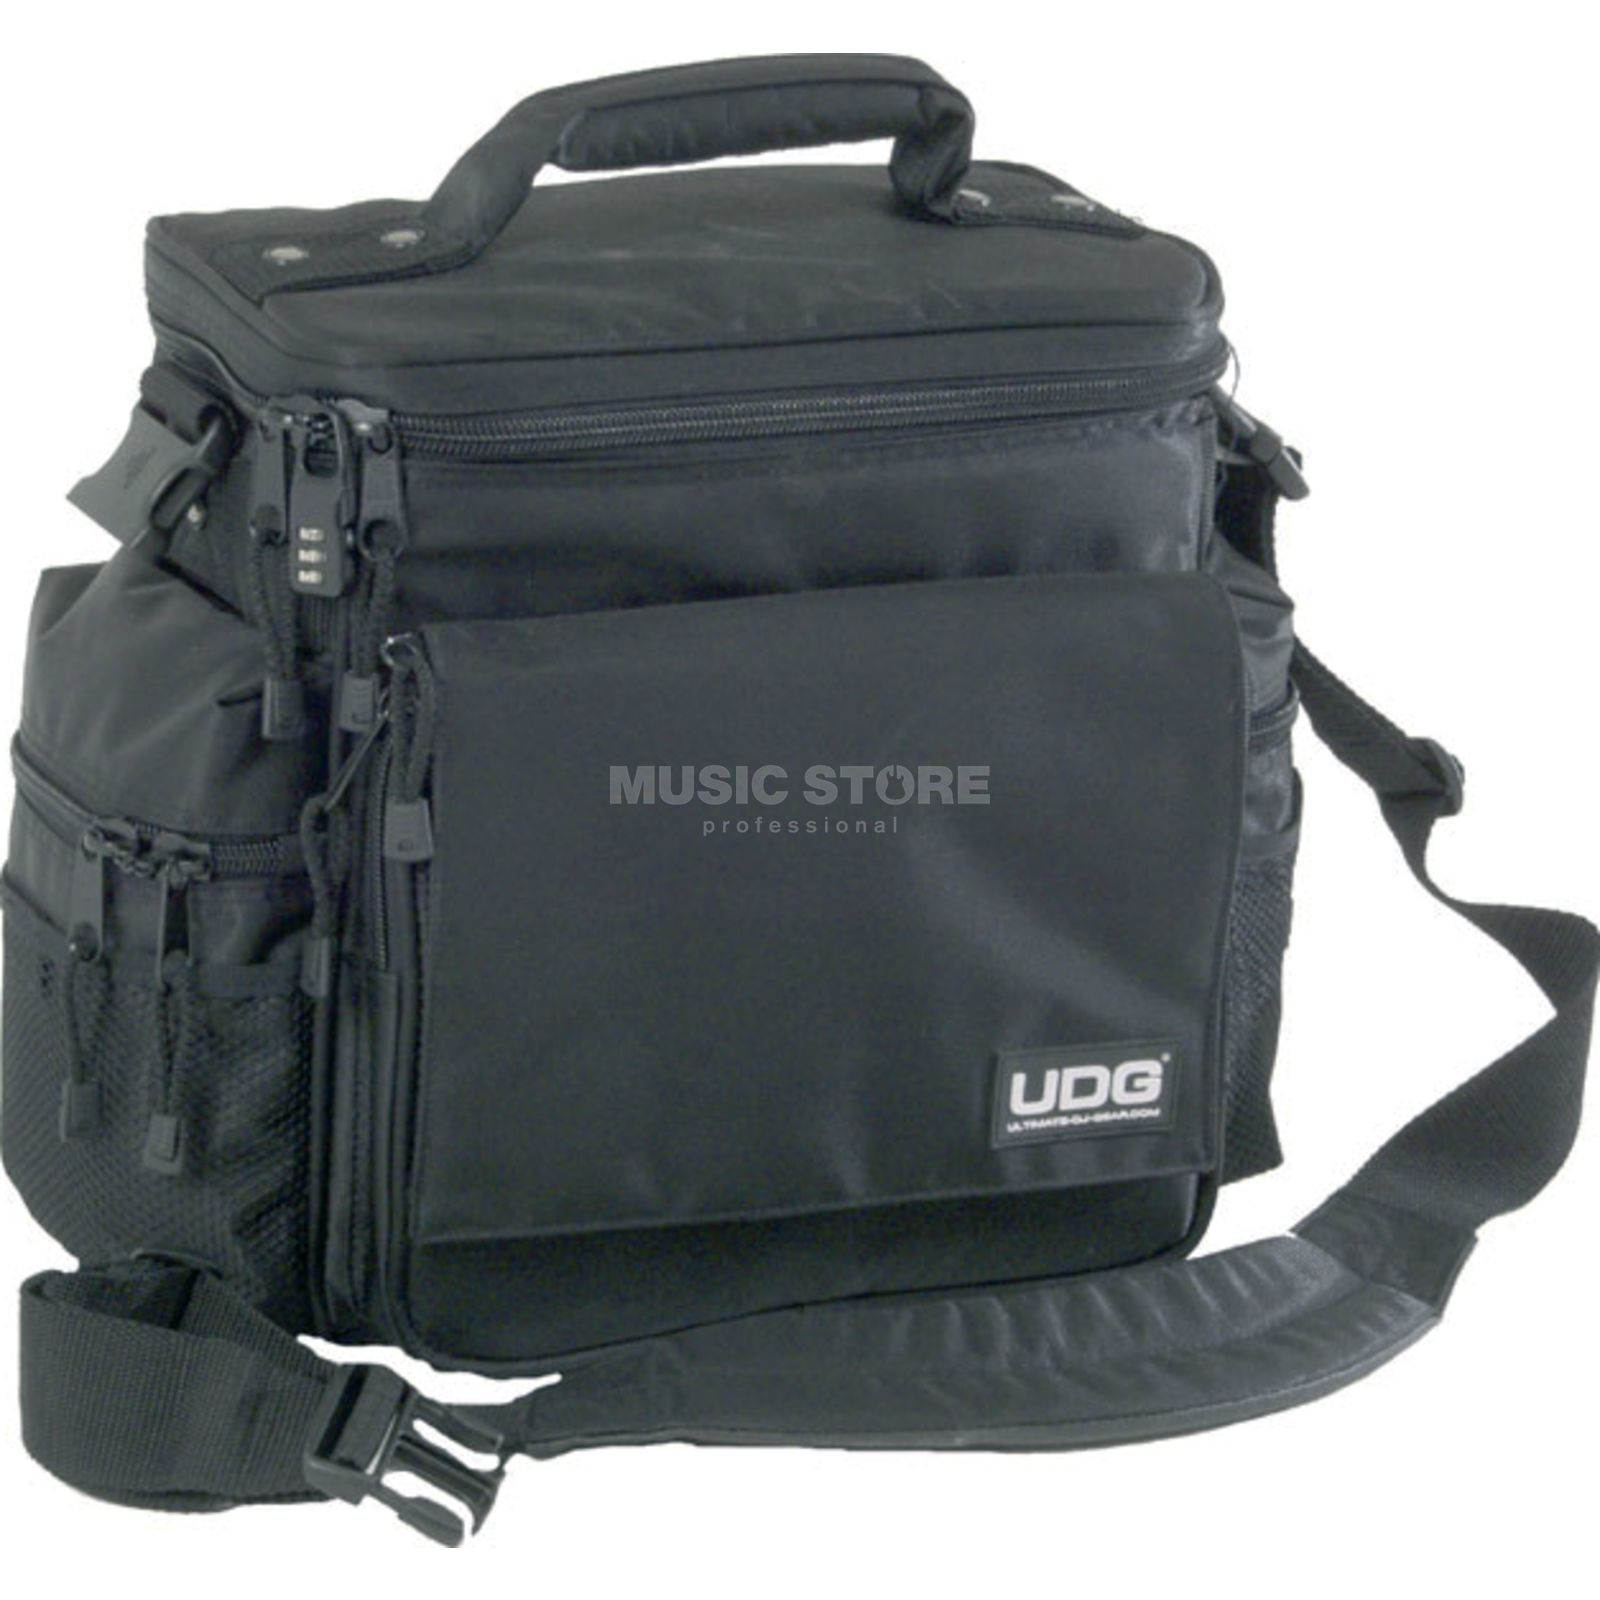 UDG SlingBag black / for 45 LP´s incl. 2 CD Maps Immagine prodotto